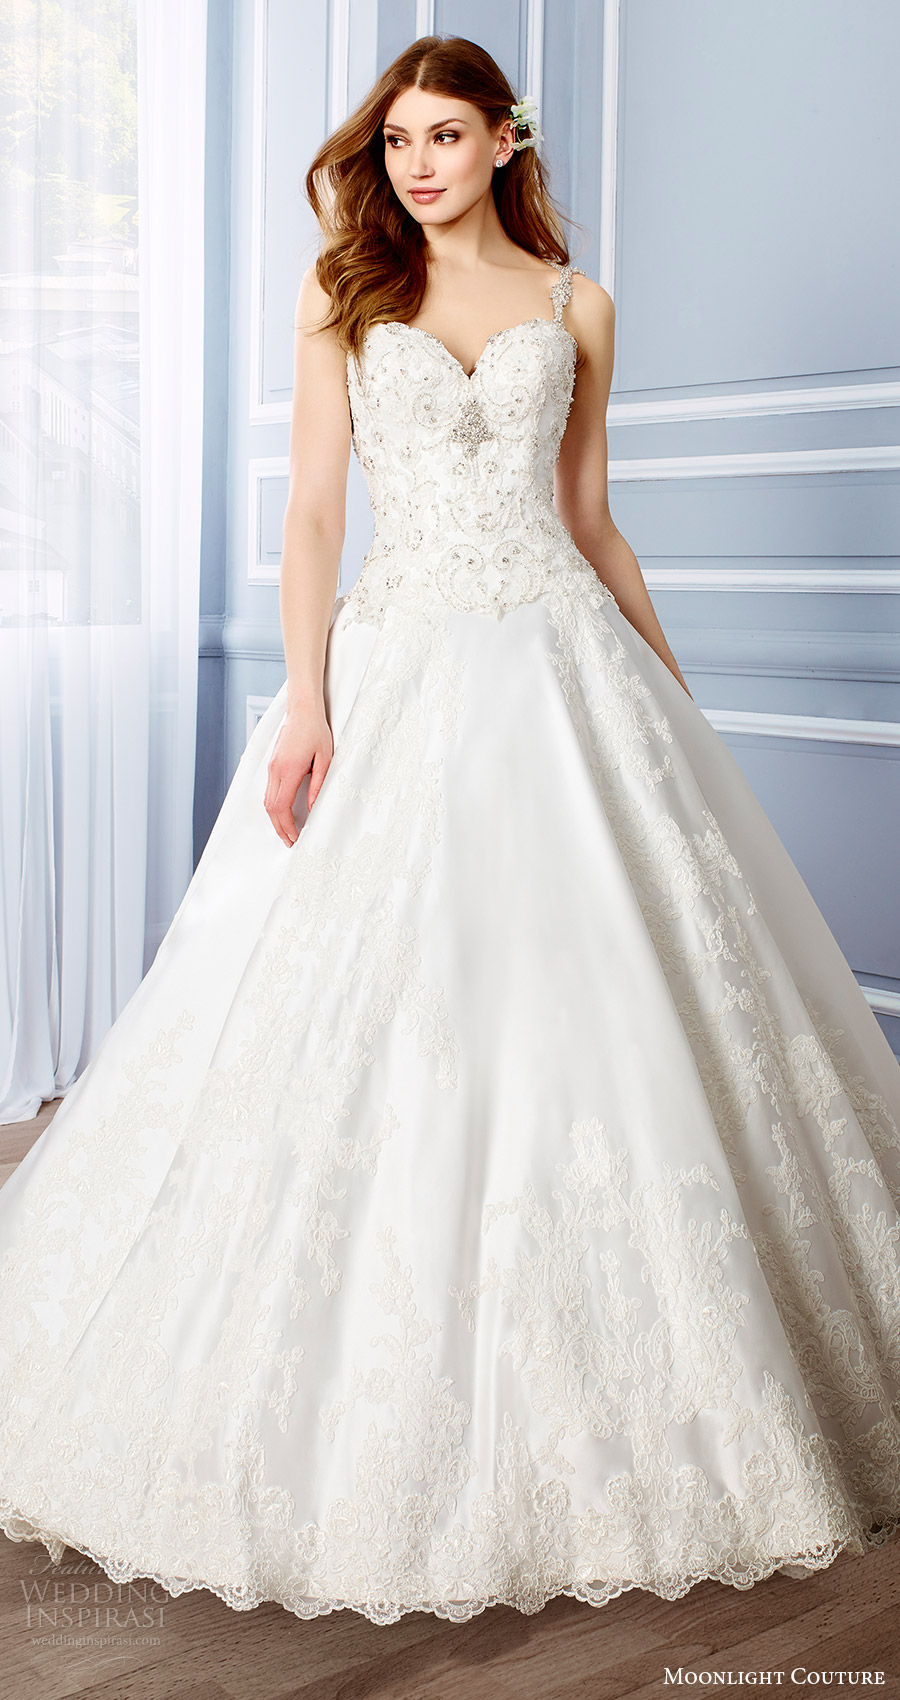 moonlight couture bridal fall 2016 sleeveless beaded straps sweetheart lace ball gown wedding dress (h1316) mv princess